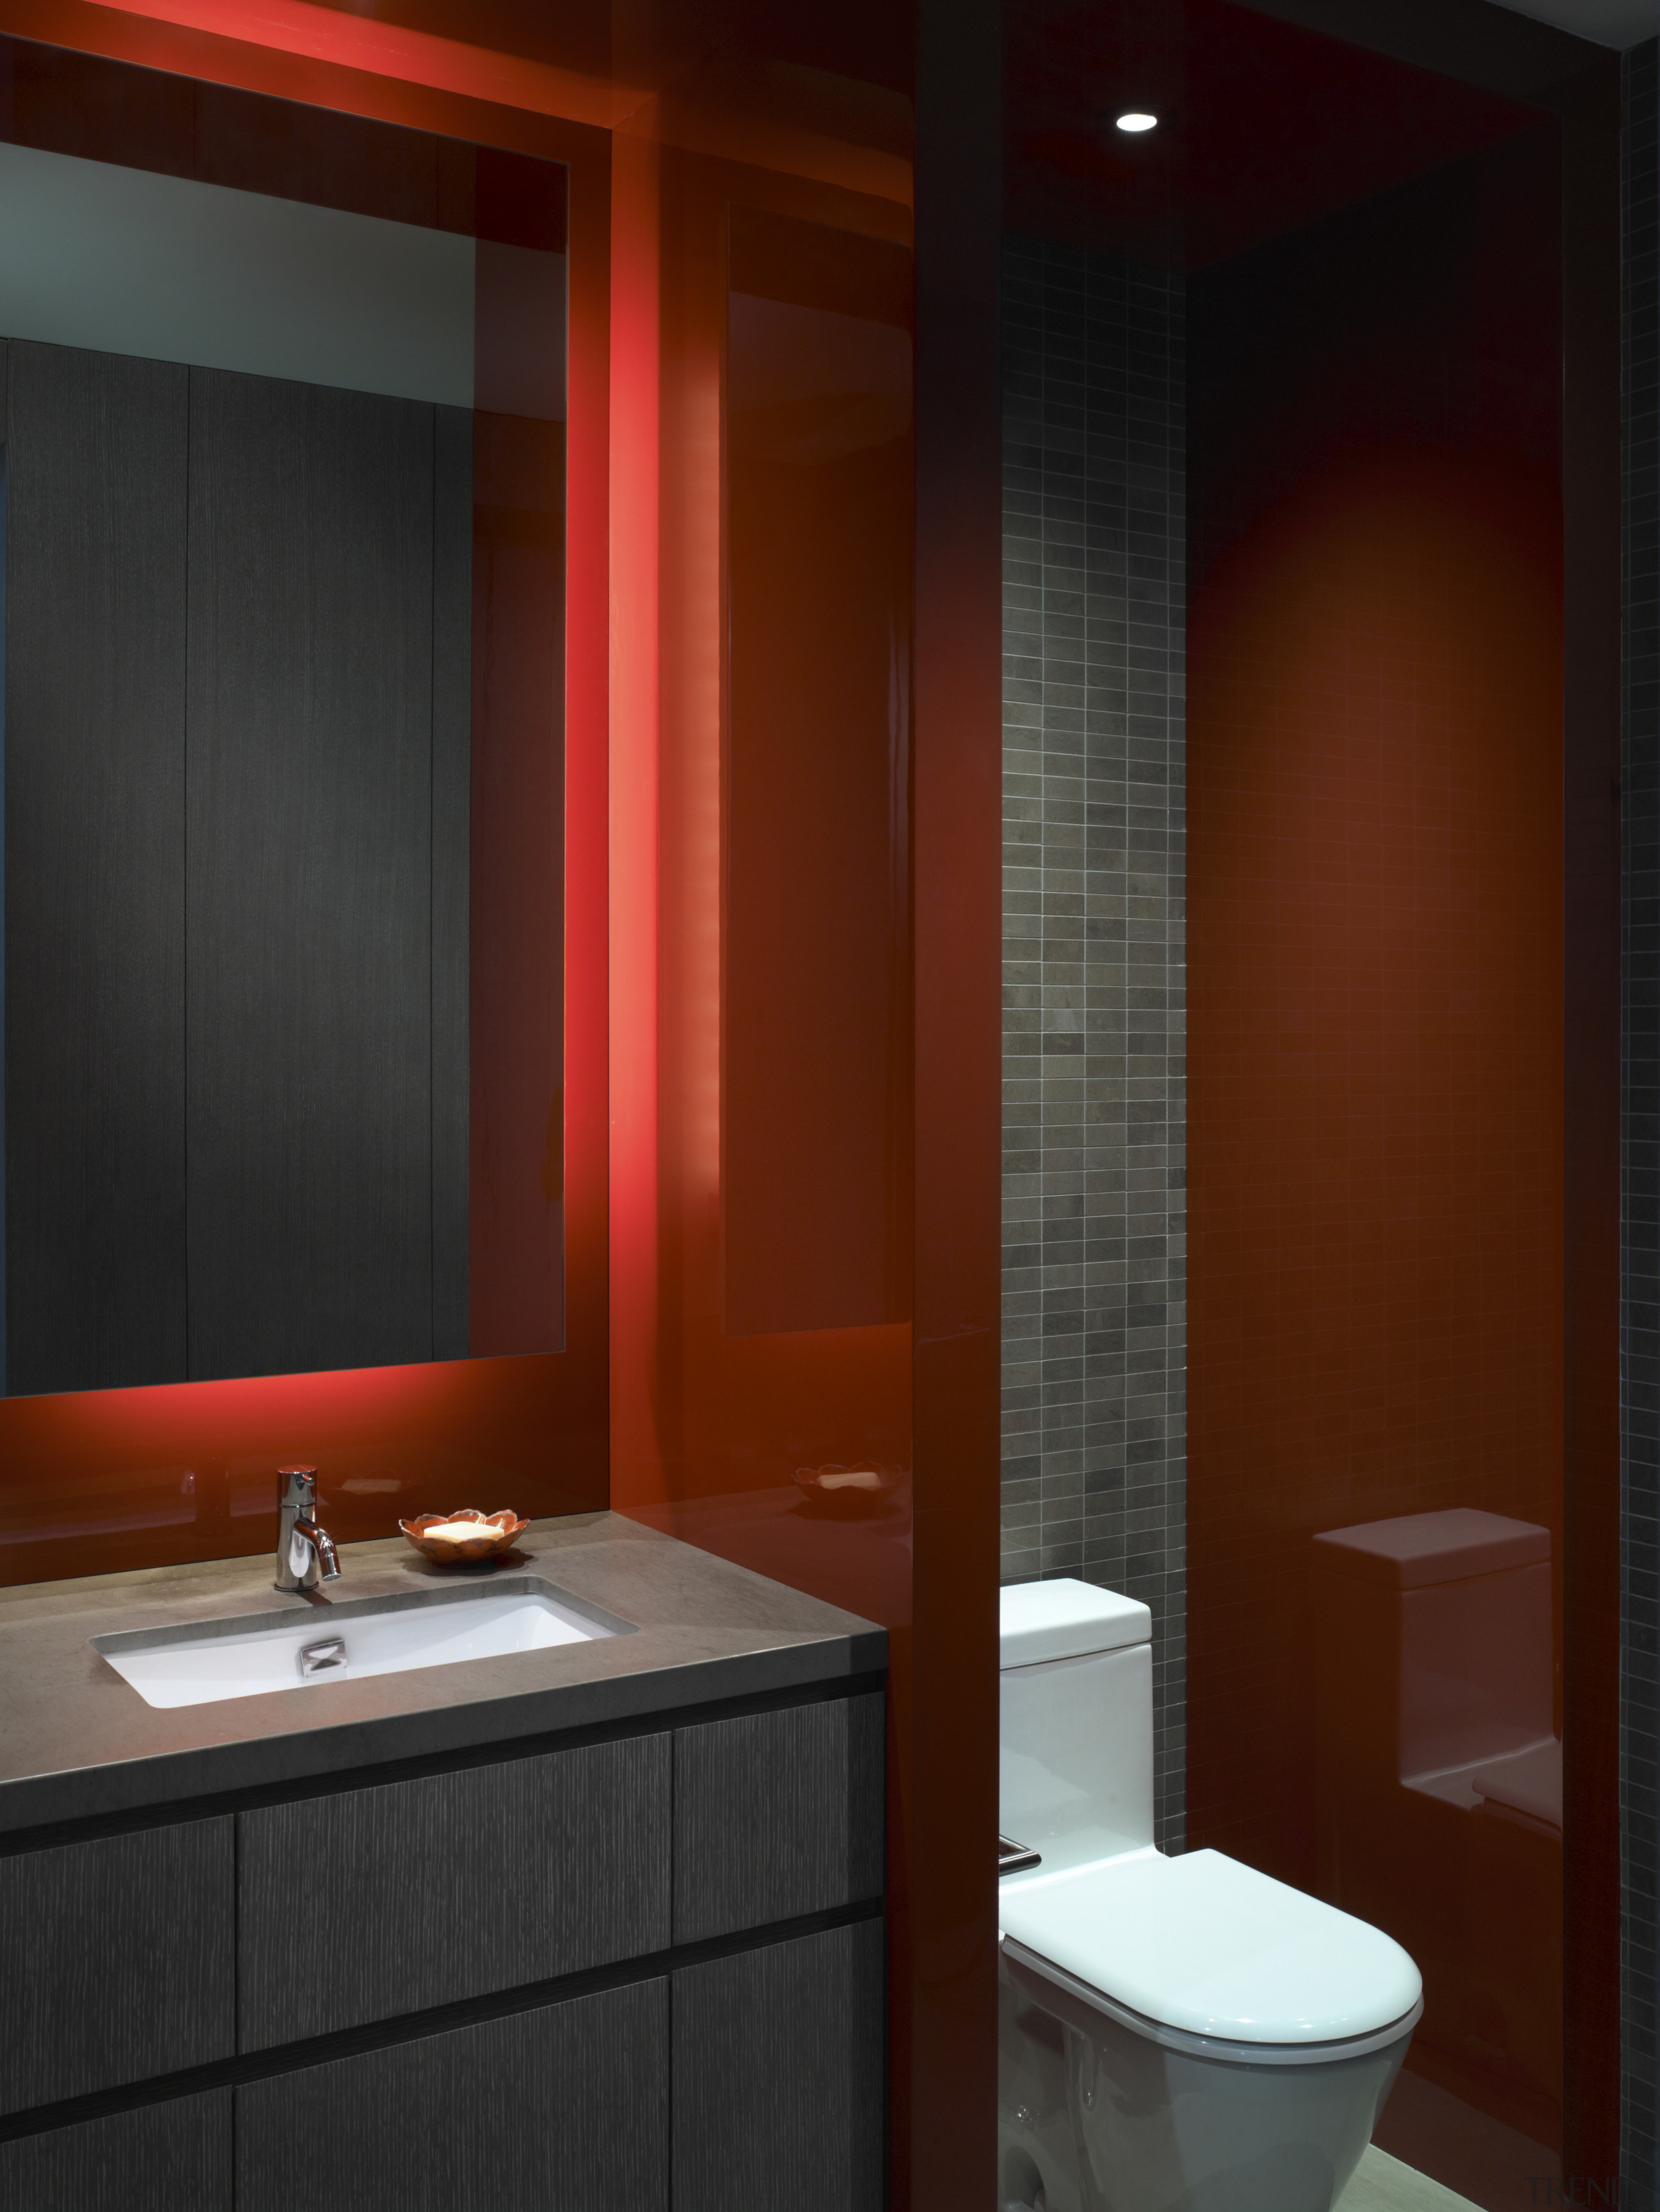 View of this contemporary apartment that has been bathroom, bathroom accessory, ceiling, interior design, lighting, room, red, black